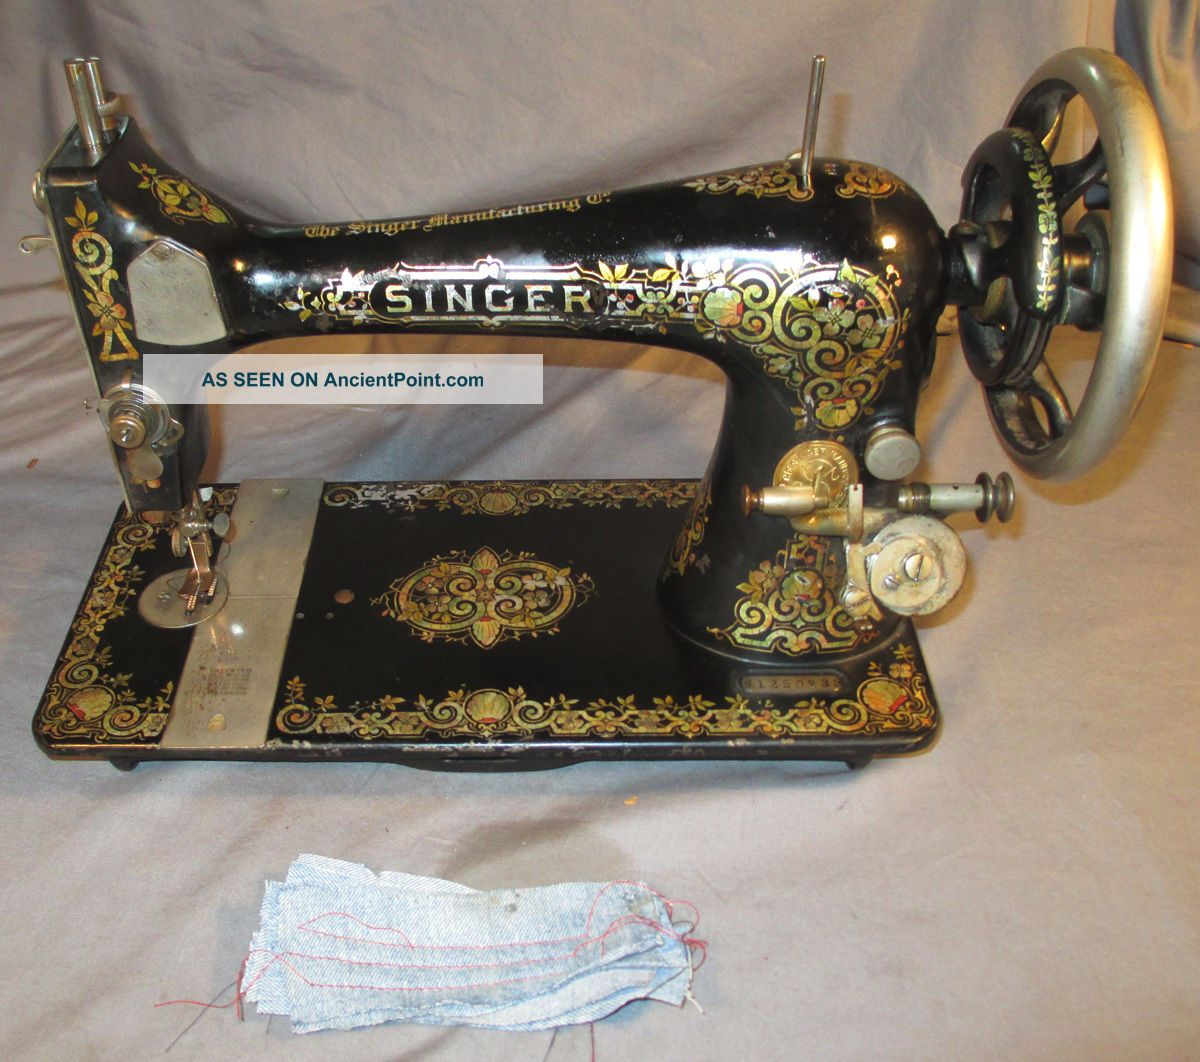 Serviced Antique 1907 Singer 27 Tiffany Treadle Sewing Machine Work 100 C - Video Sewing Machines photo